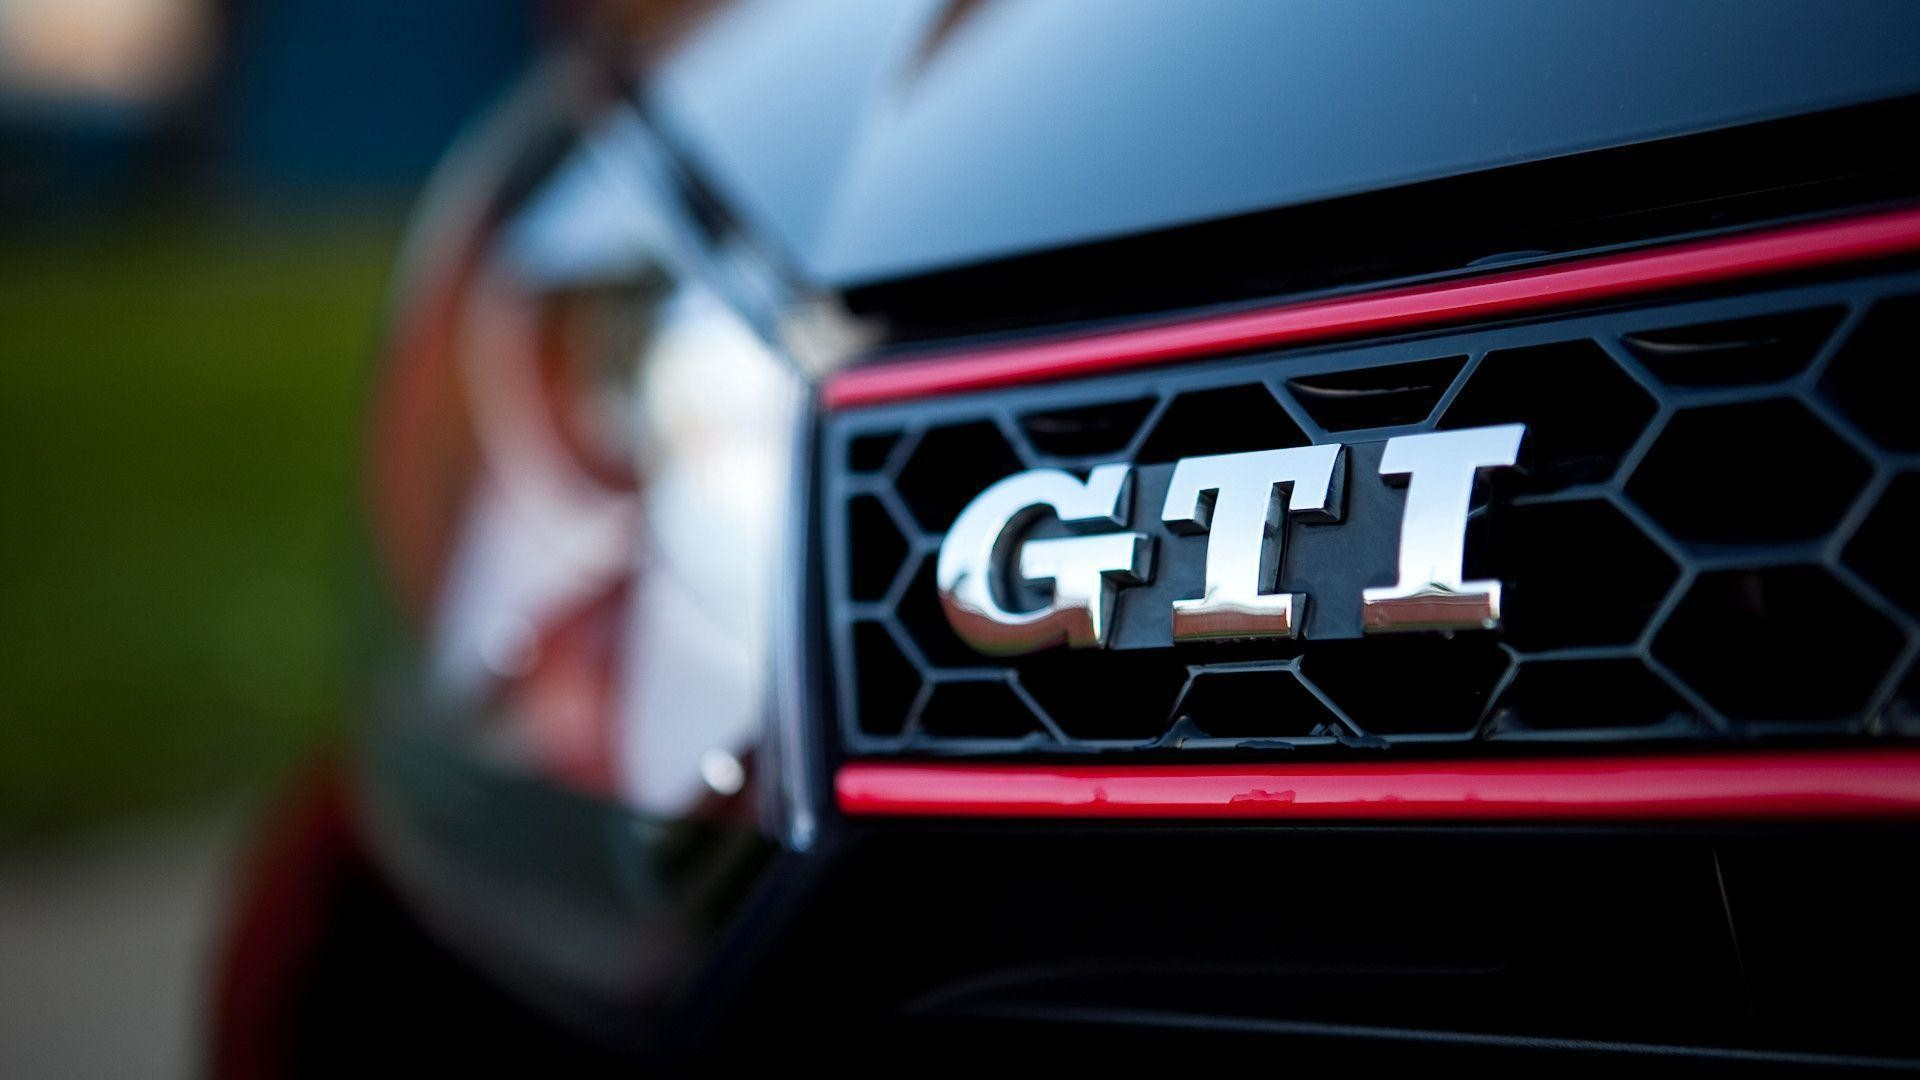 Black Design Wallpaper Gti Wallpaper 77 Images